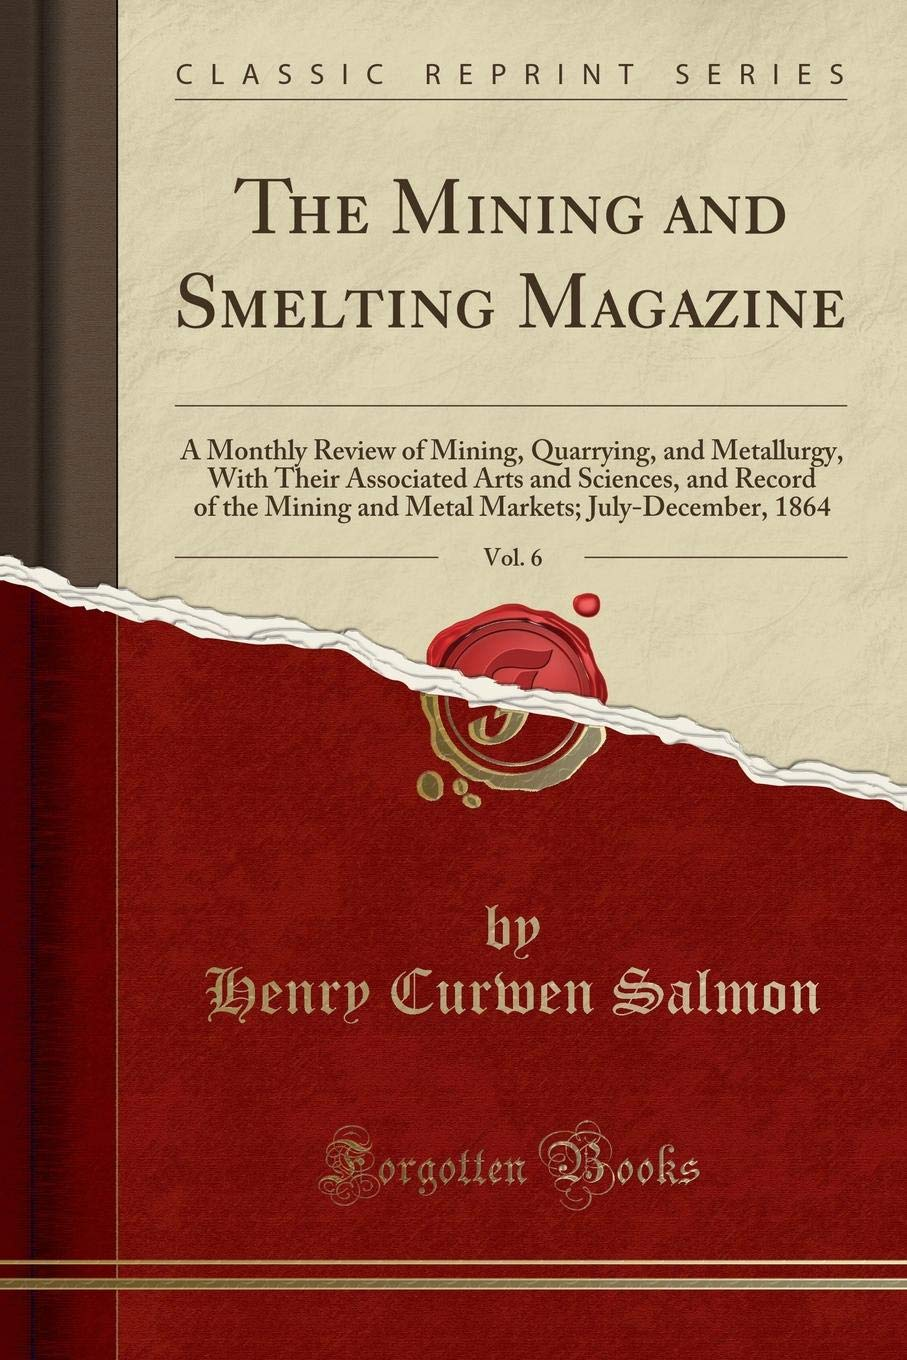 Download The Mining and Smelting Magazine, Vol. 6: A Monthly Review of Mining, Quarrying, and Metallurgy, With Their Associated Arts and Sciences, and Record ... July-December, 1864 (Classic Reprint) pdf epub